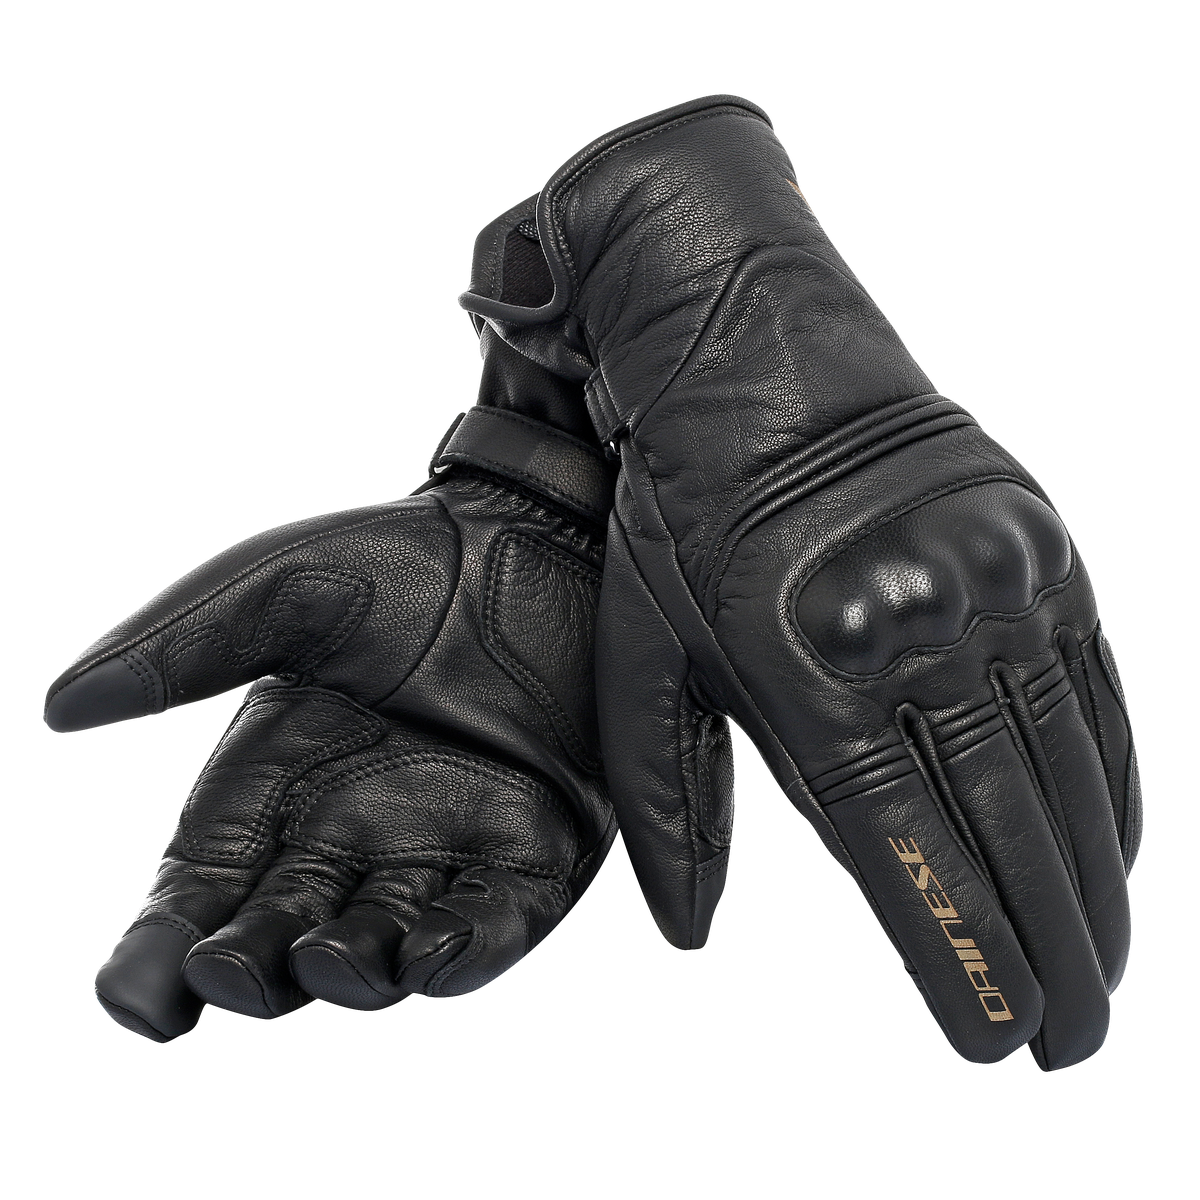 GUANTO MOTO IMPERMEABILE PELLE BLACK  /WATERPROOF FULL LEATHER GLOVES  Dainese CORBIN D-DRY GLOVES